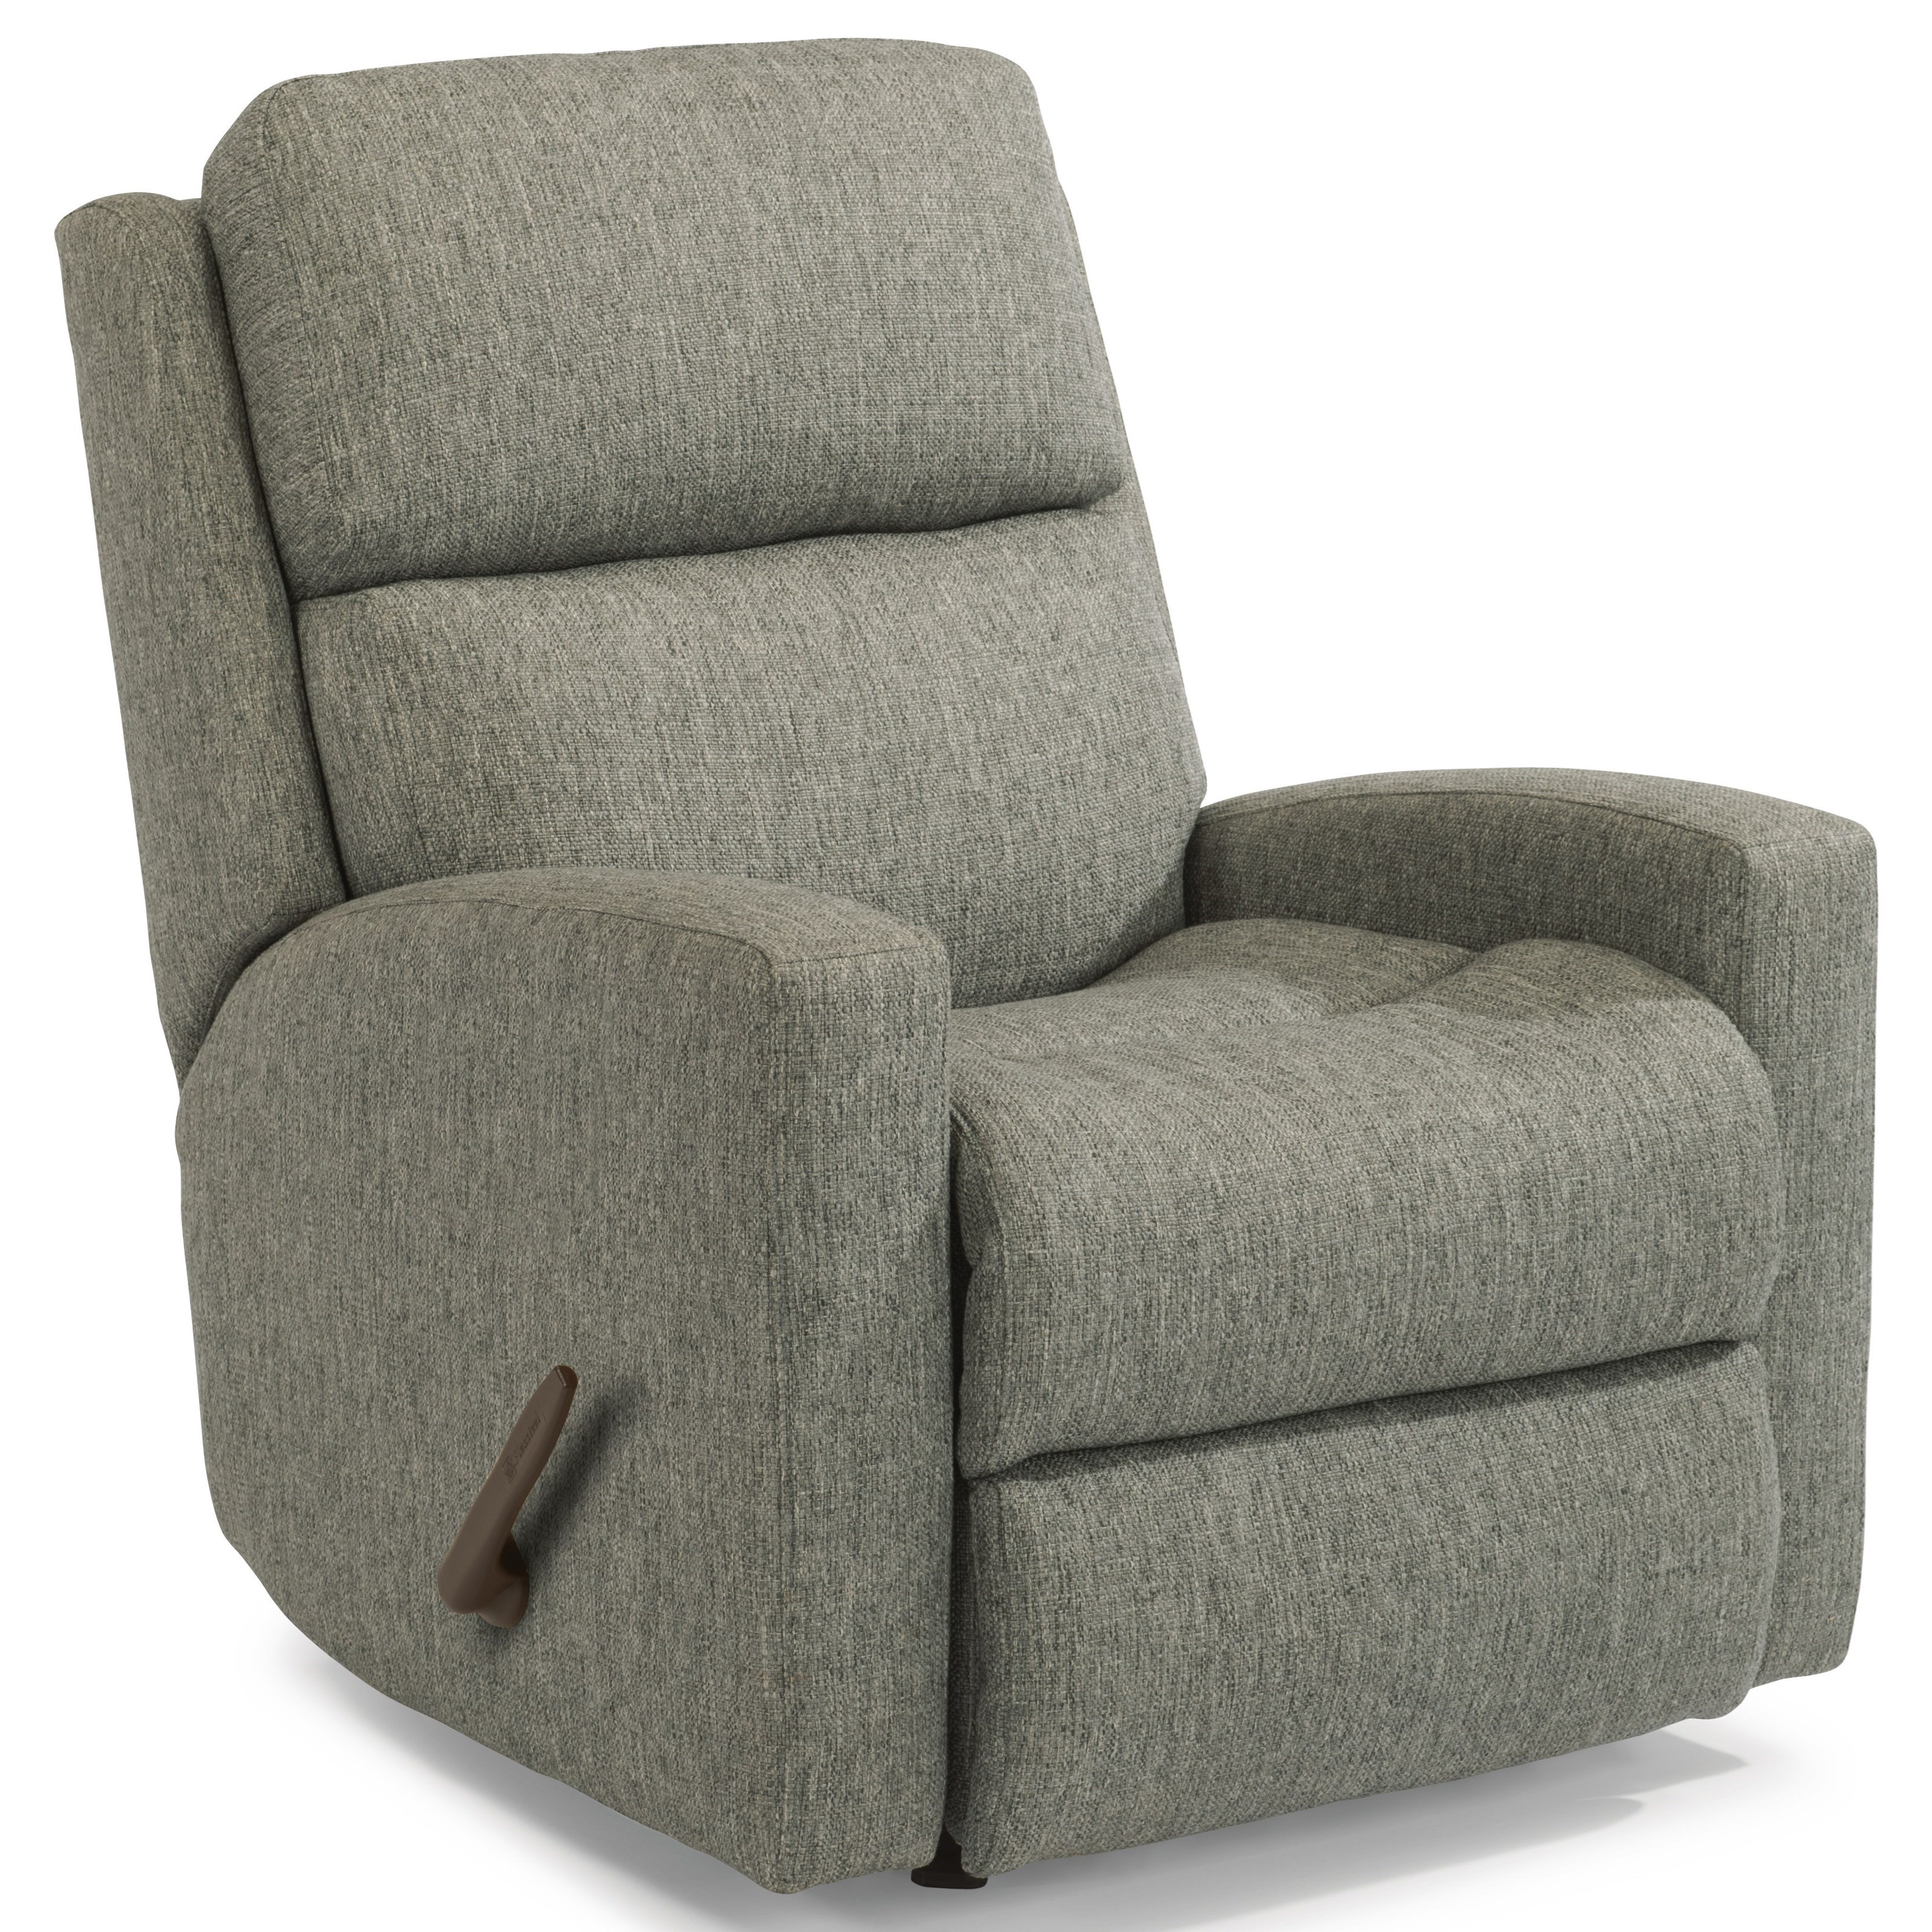 Catalina Rocker Recliner  by Flexsteel at VanDrie Home Furnishings